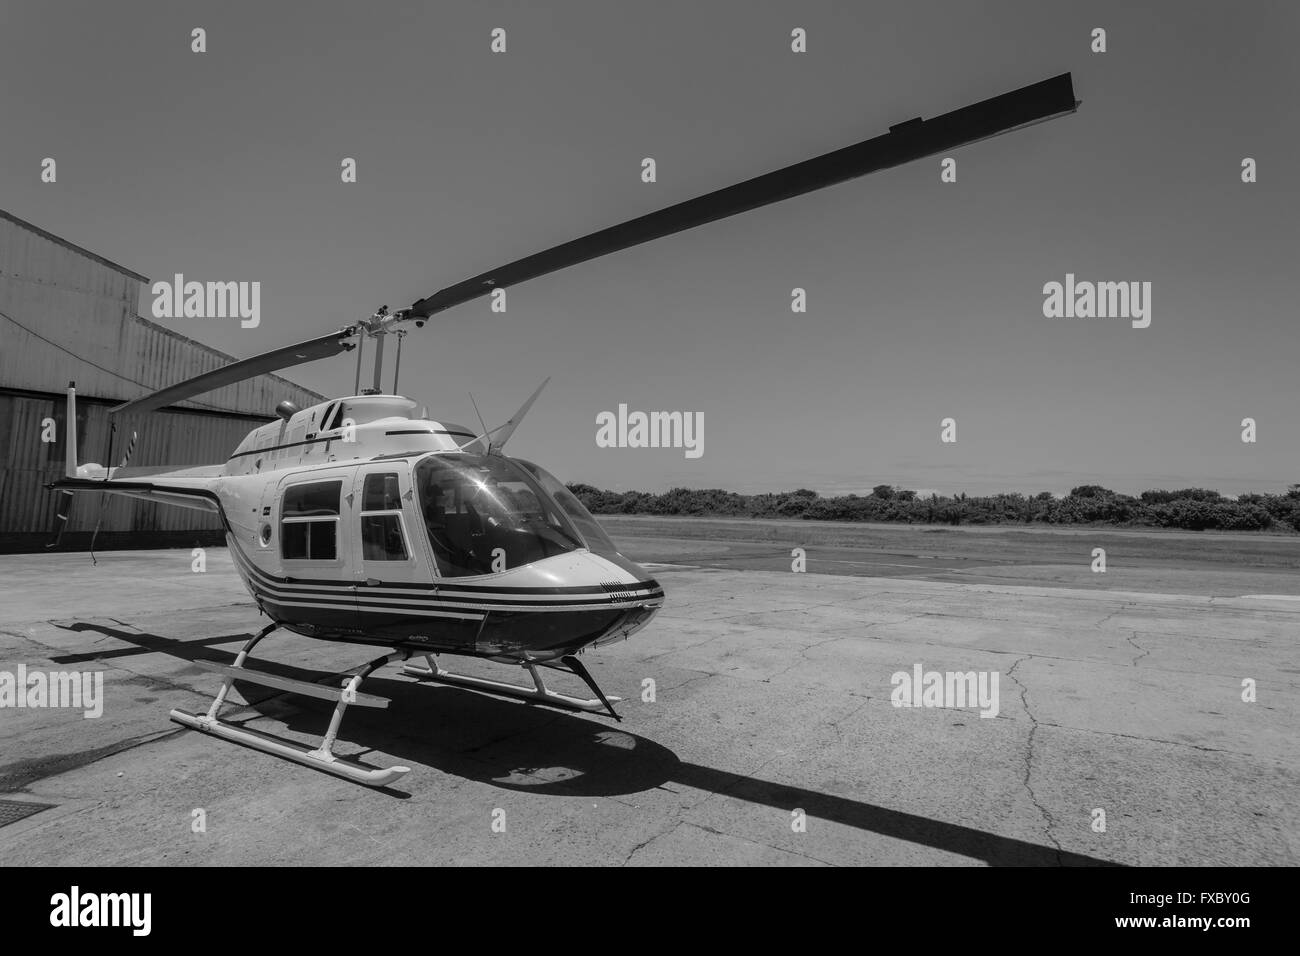 Helicopter aircraft on airport parked outdoors - Stock Image